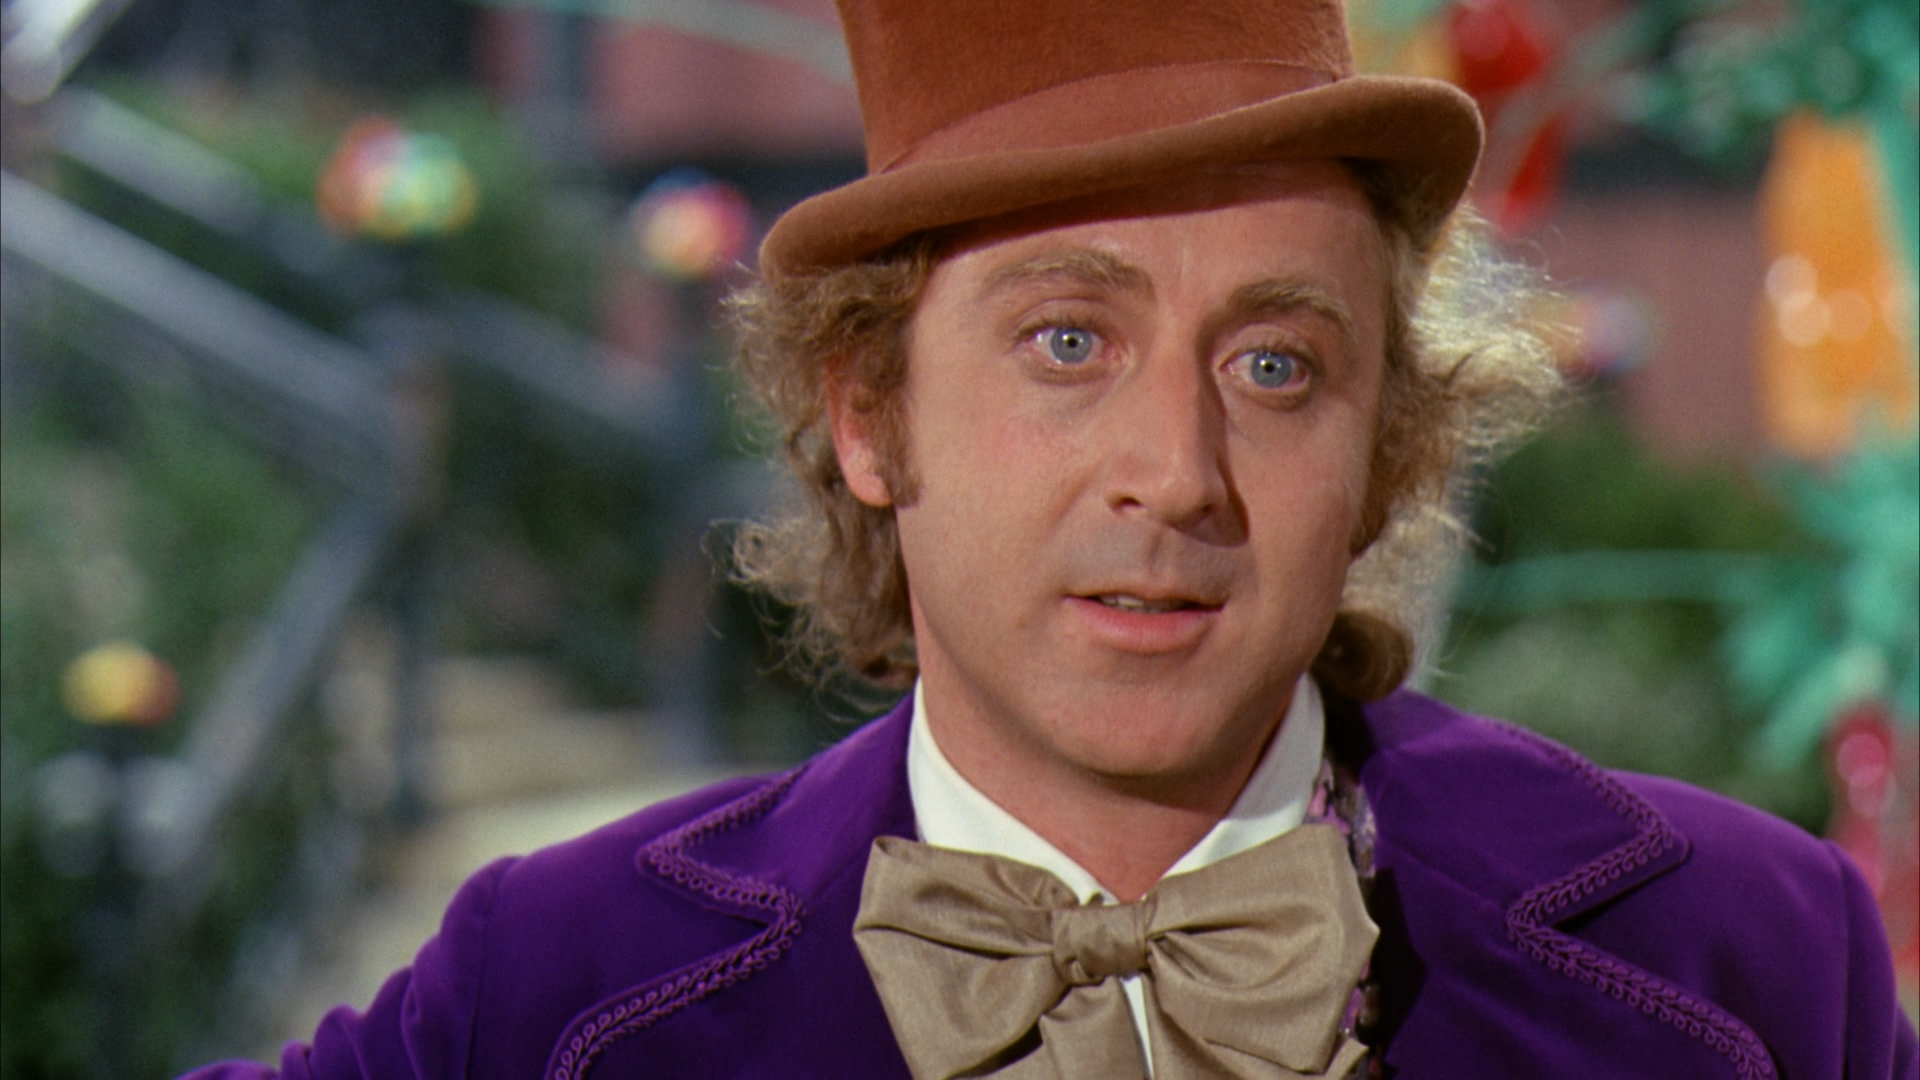 This Is The Beautiful Reason Why Gene Wilder Kept His Illness A Secret GeneWilderWillyWonka1